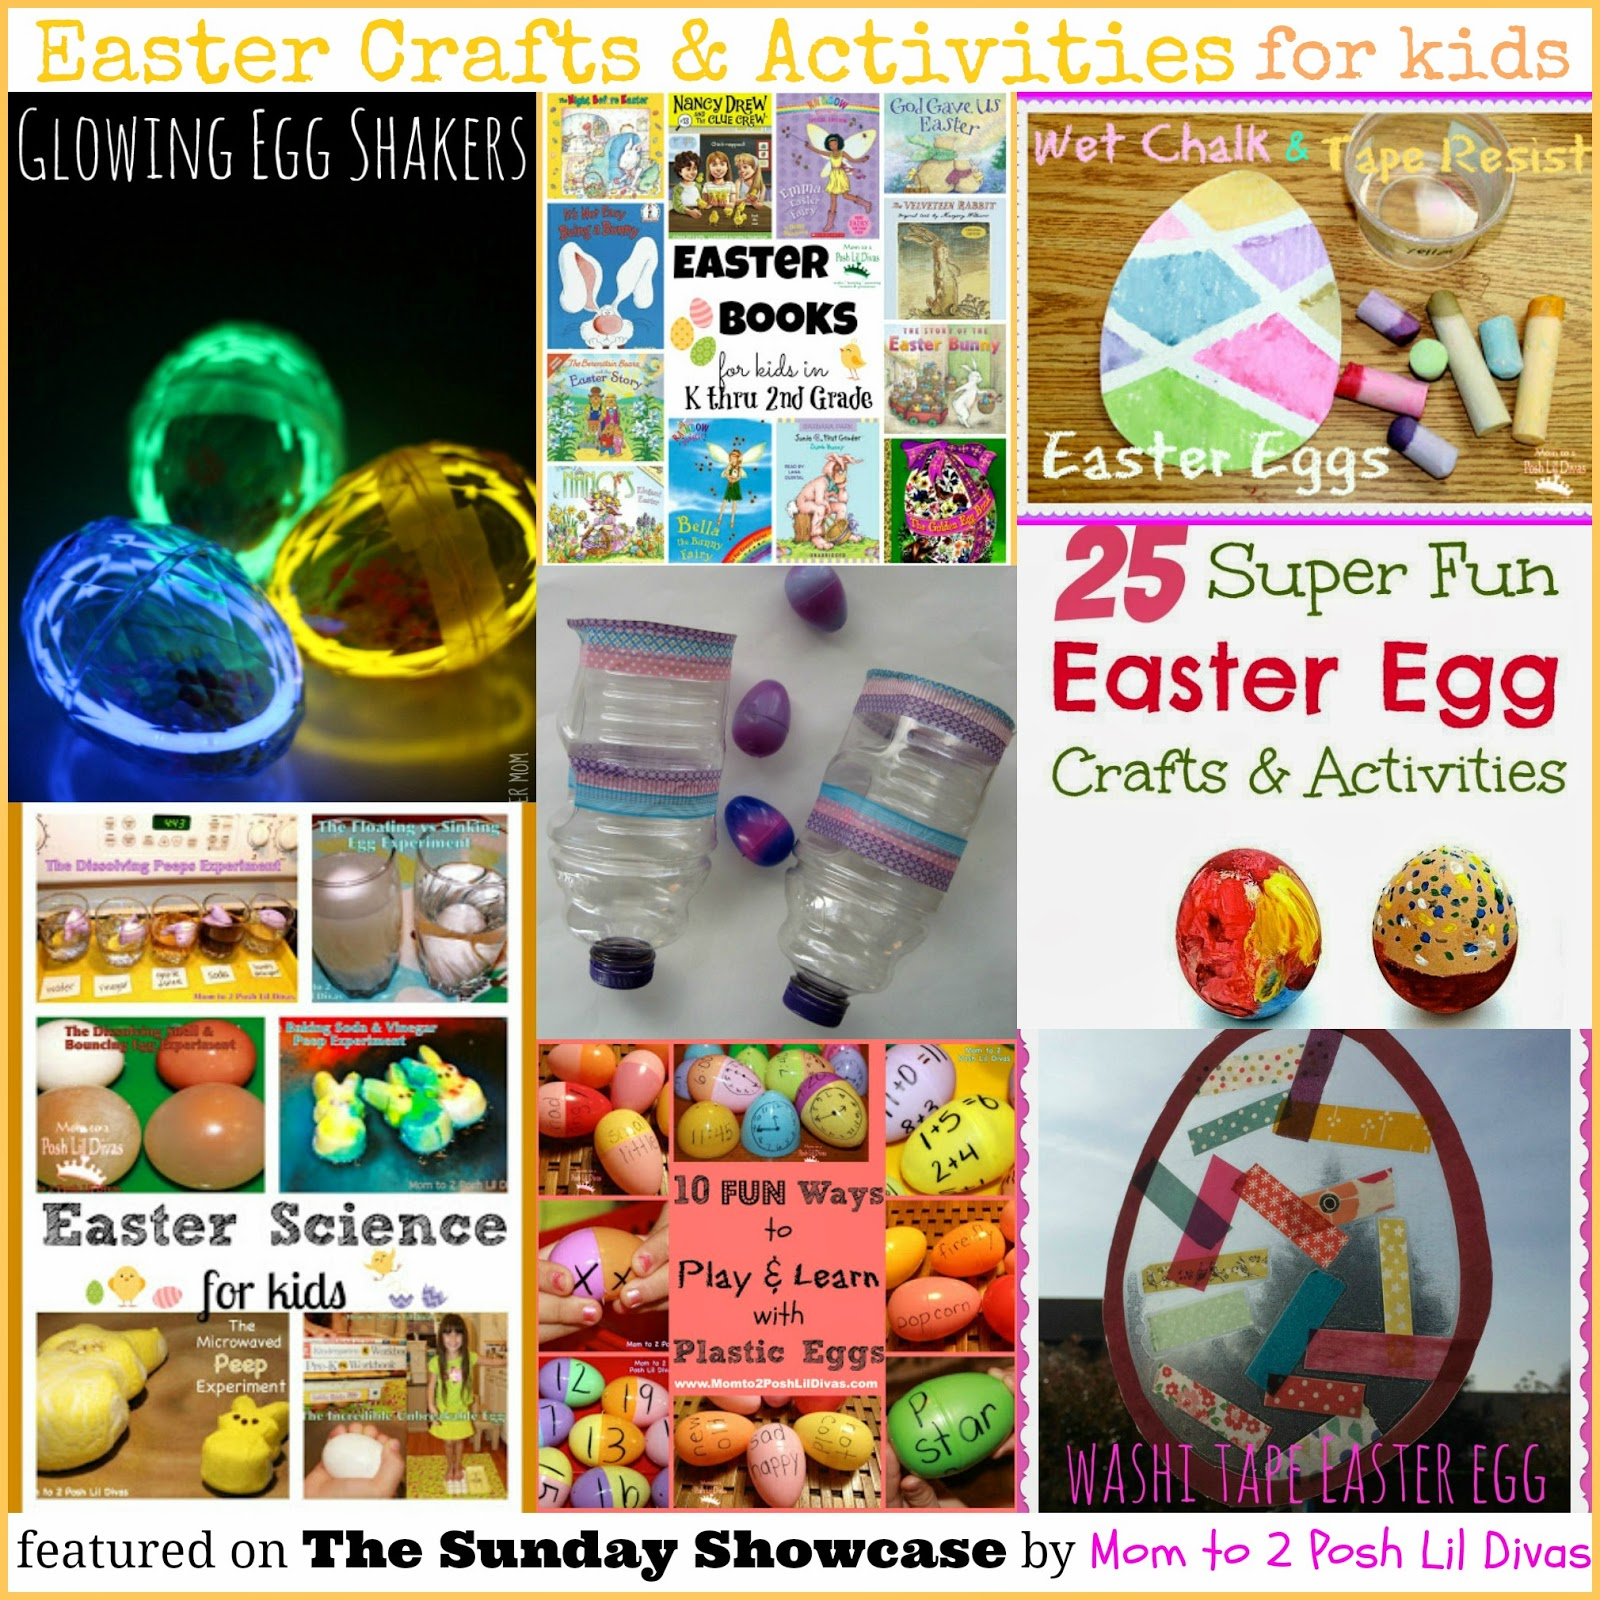 March crafts for kindergarten - Easter Crafts Activities For Kids The Sunday Showcase 3 23 14